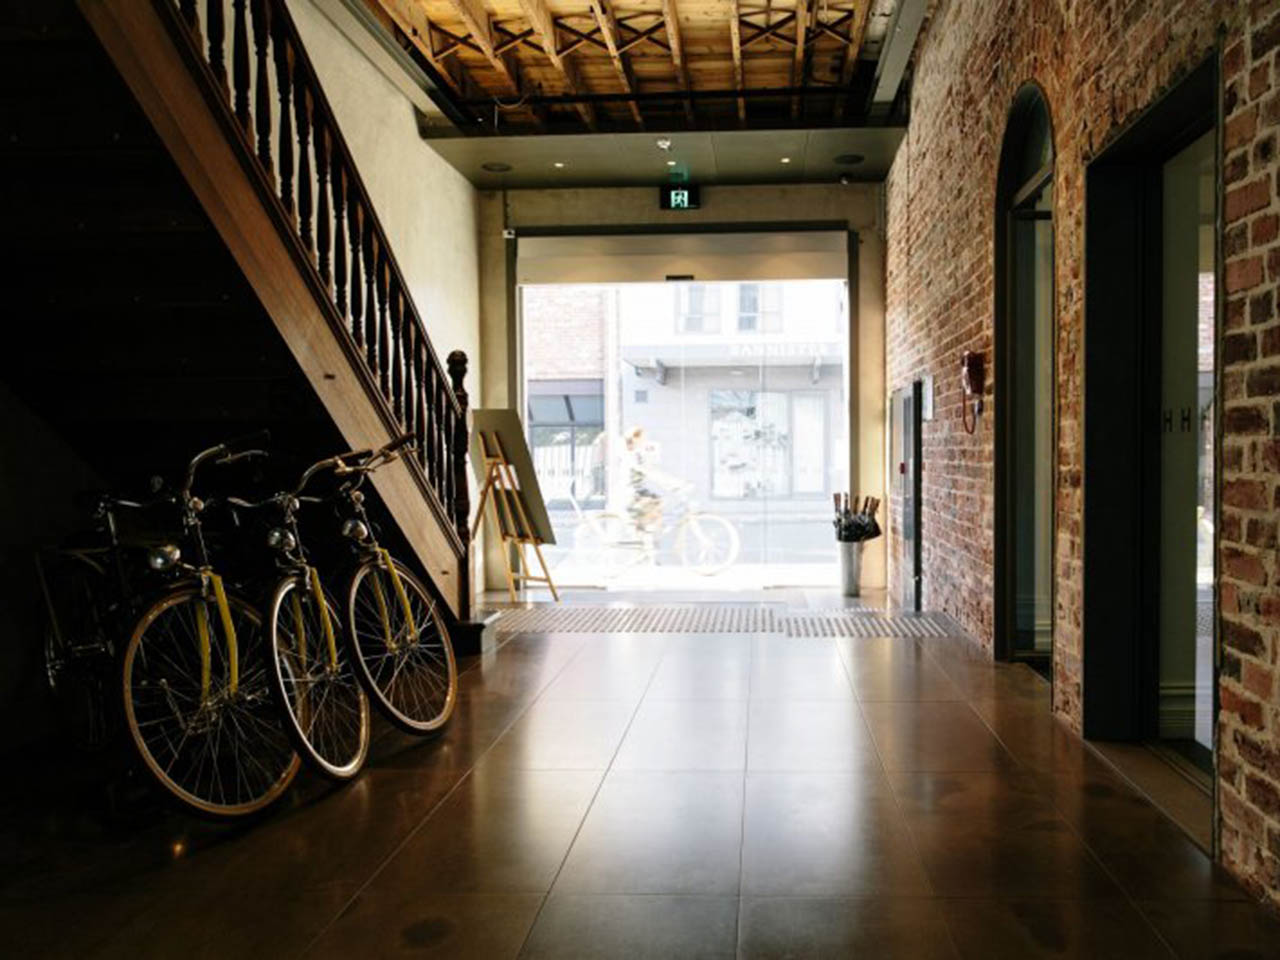 Brick Retro Entrance With Bike Leaned Against The Wall.